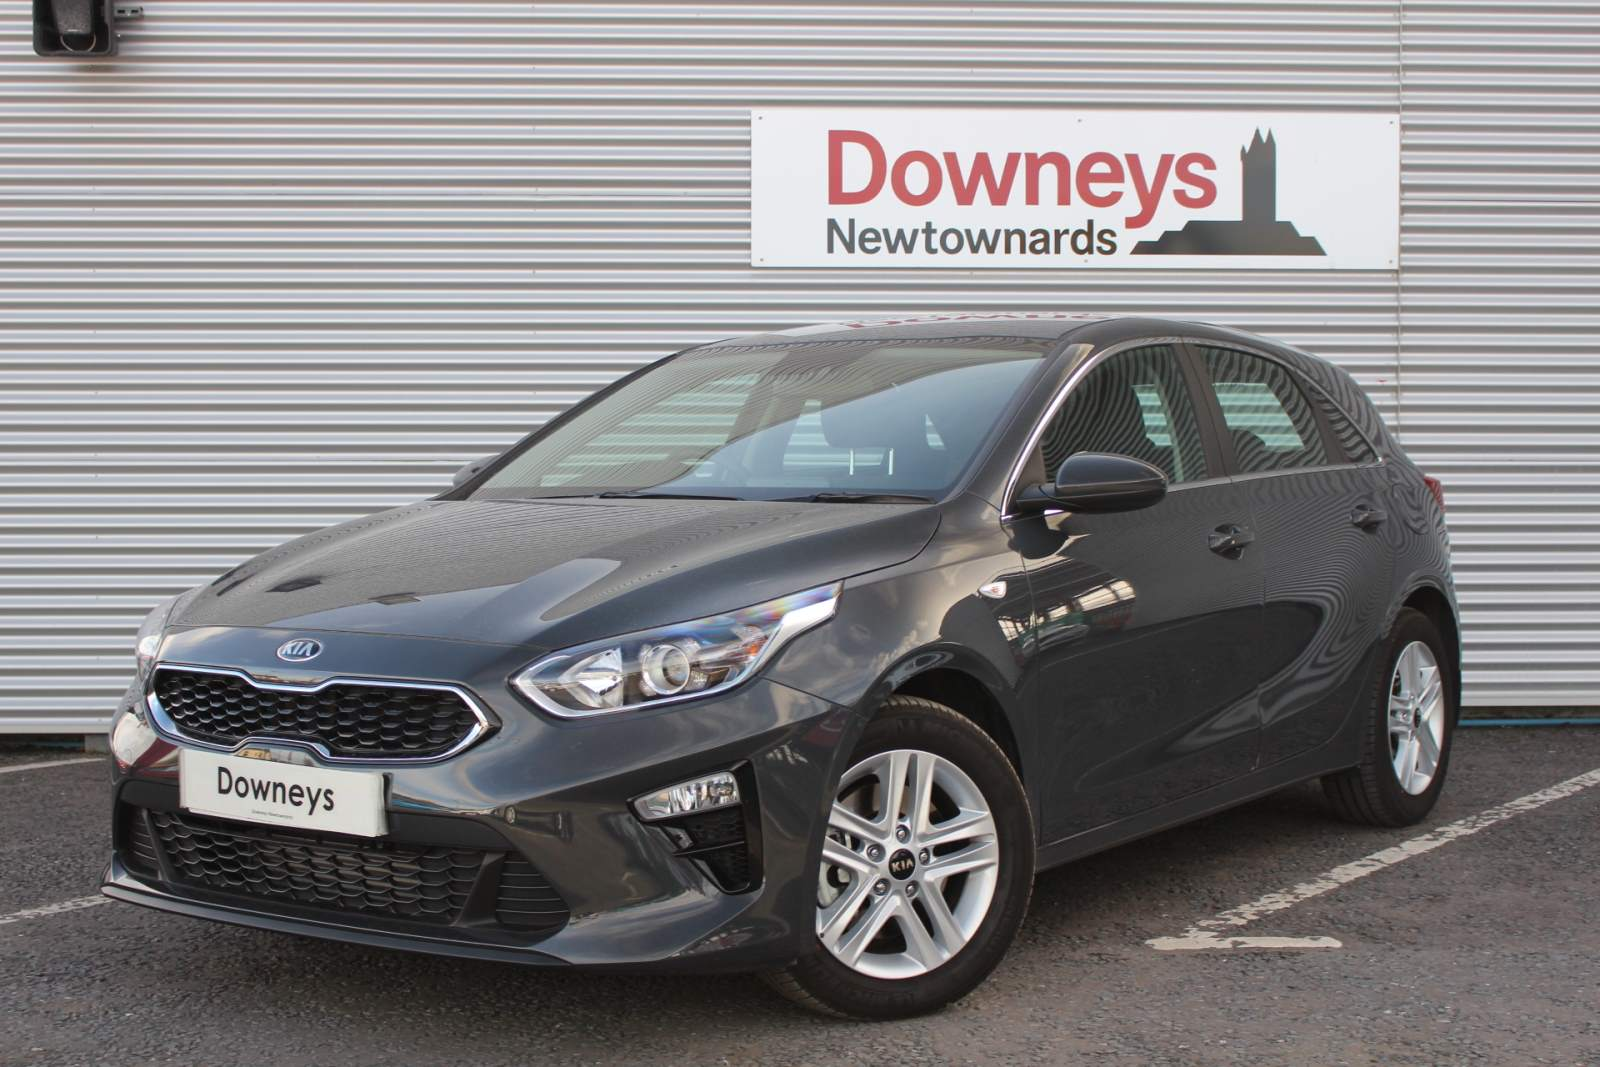 Kia CEED 2 1.6 CRDI ISG  FULL KIA WARRANTY UNTIL FEB 2025